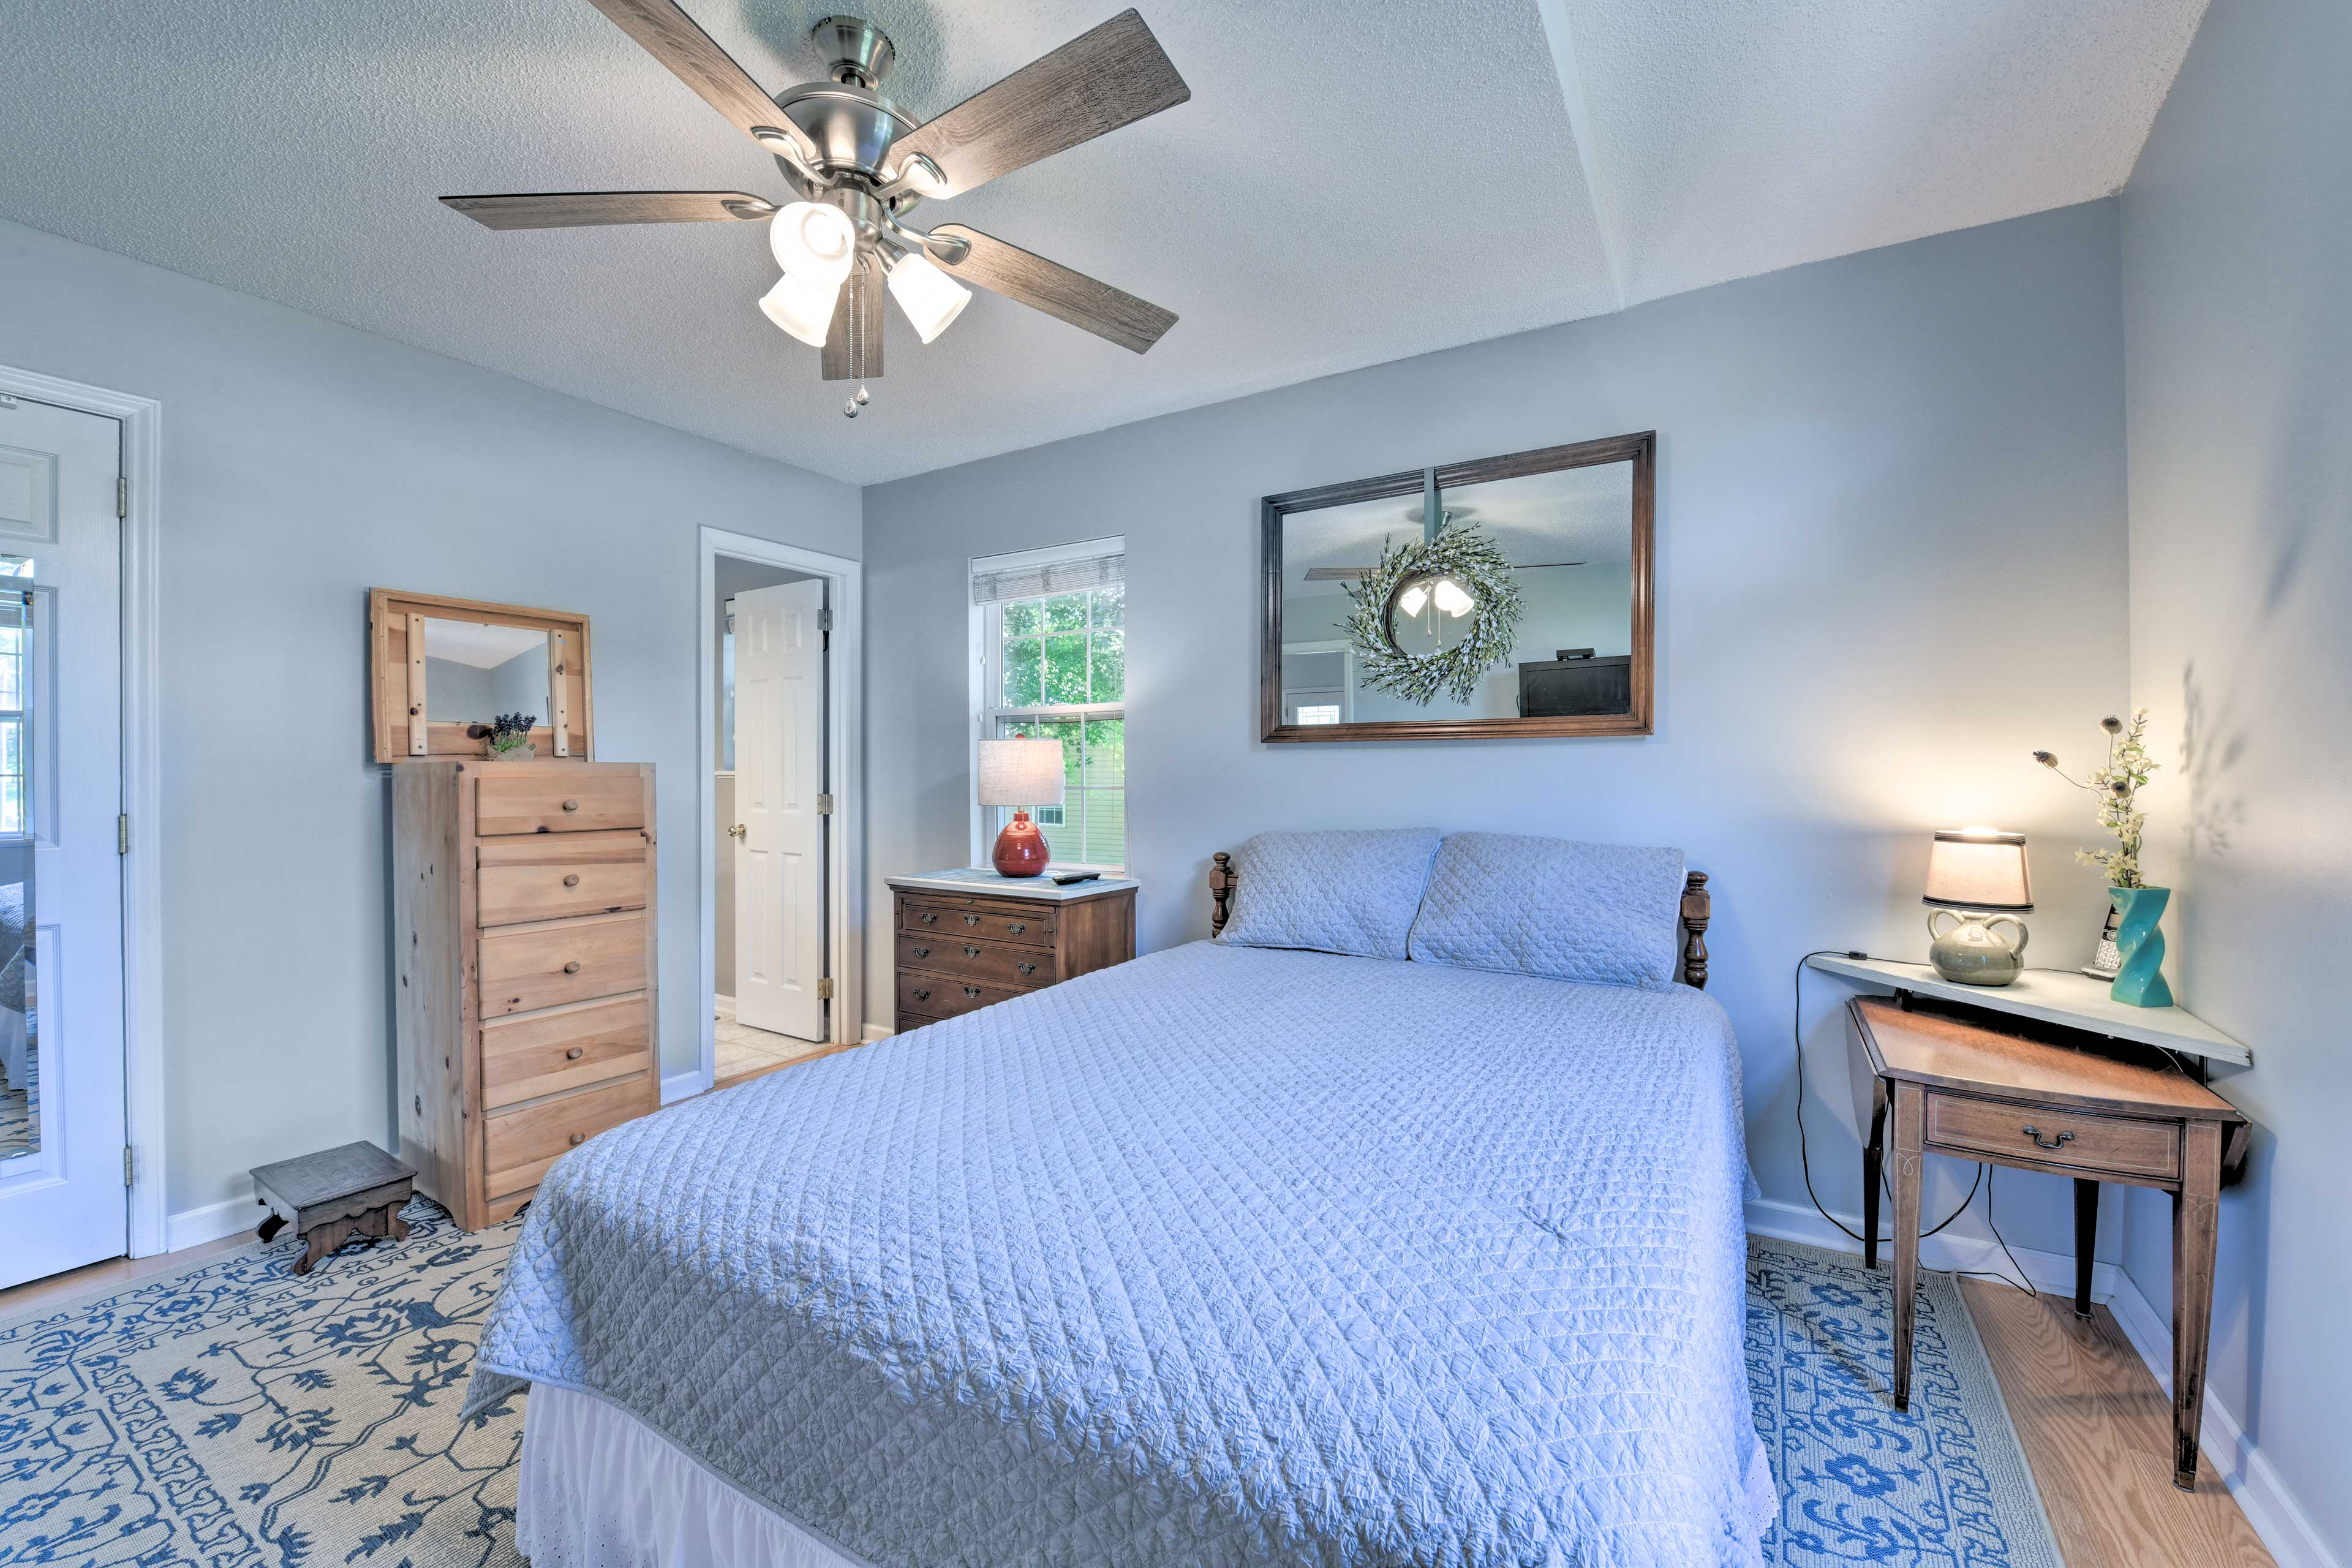 Turn the ceiling fan on for a breeze while you sleep!